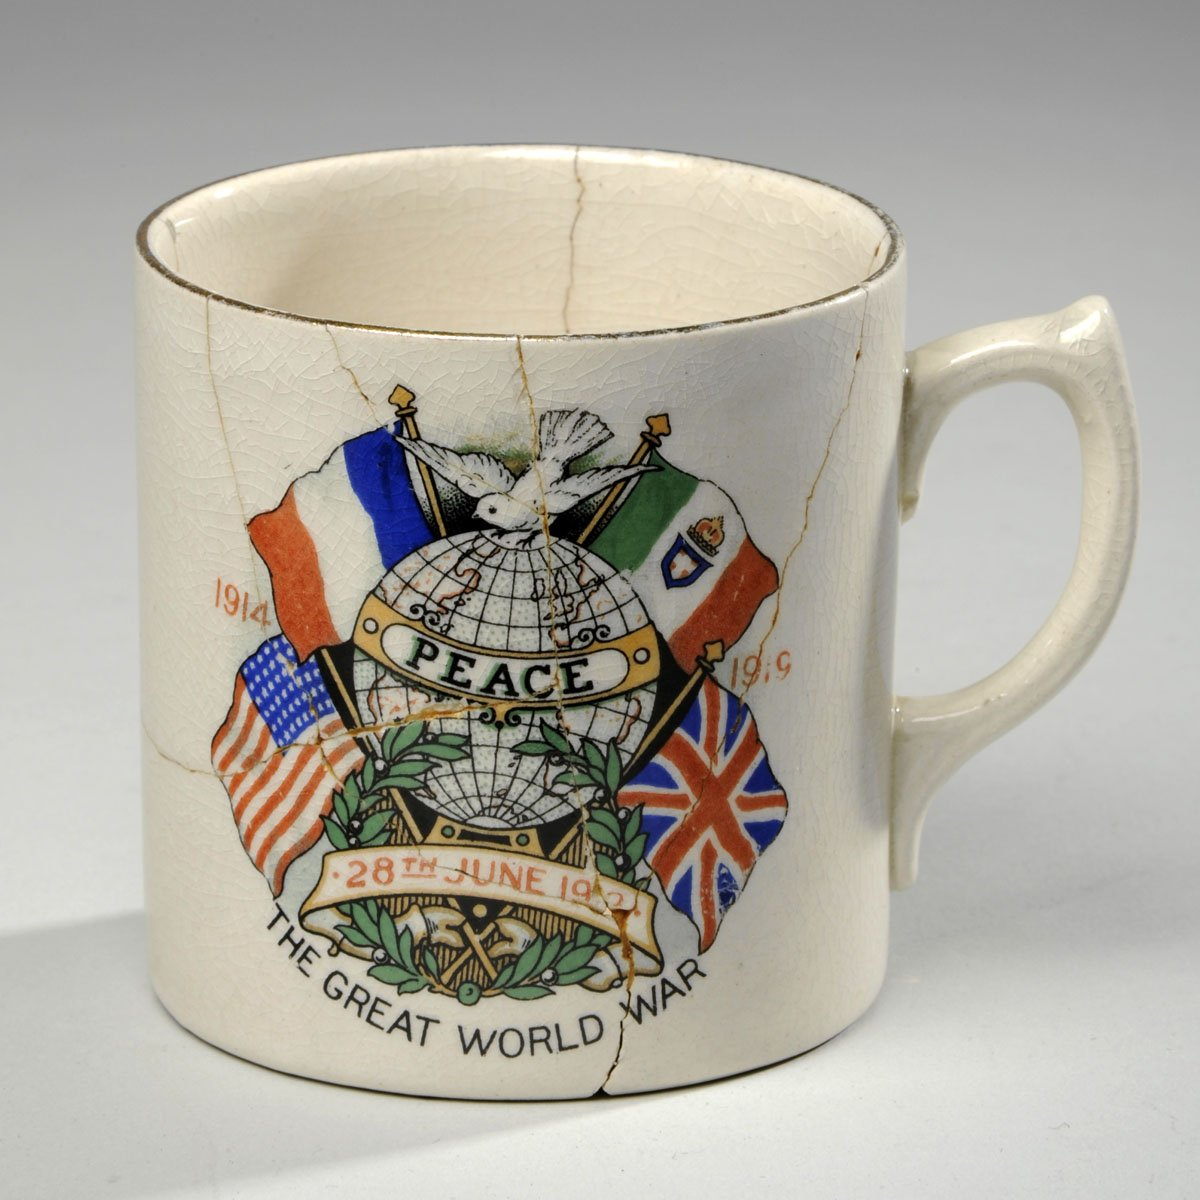 It&#39;s #InternationalDayofPeace today - we thought we&#39;d share this mug we found in the #collection from 1919, commemorating the end of #WW1<br>http://pic.twitter.com/8kVCf46JeF